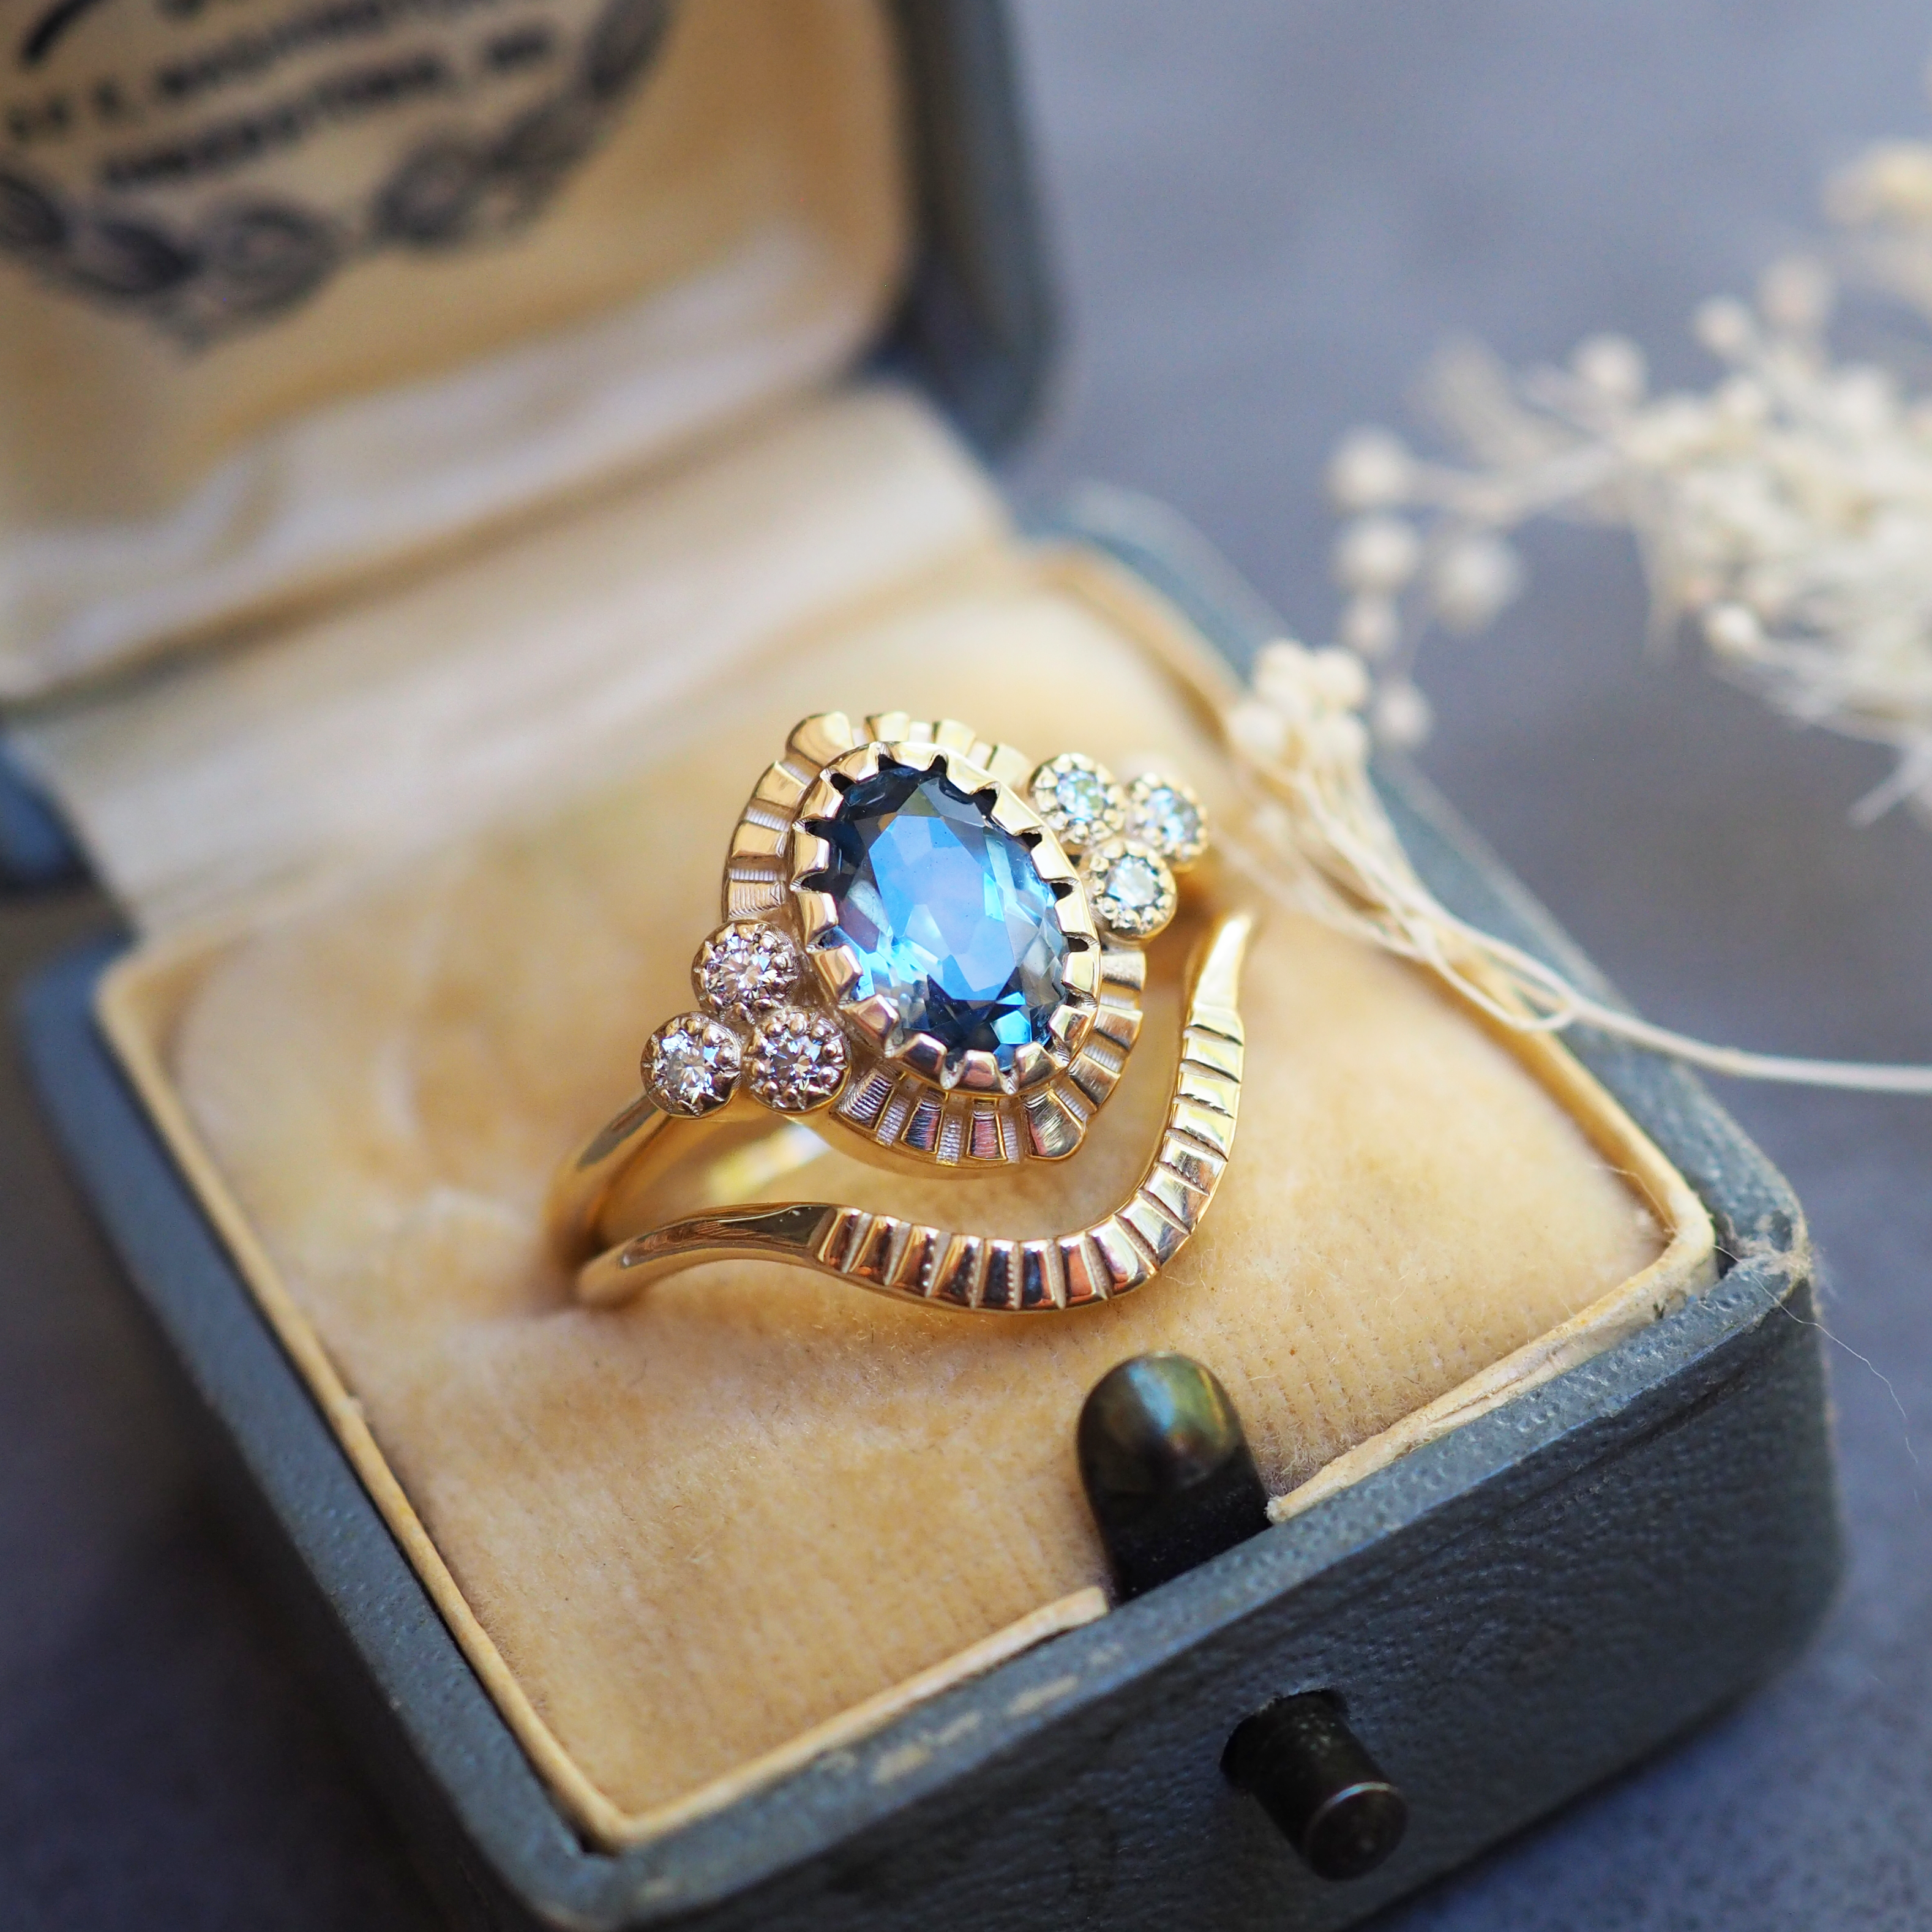 Teal Sapphire and Diamond Engagement Ring